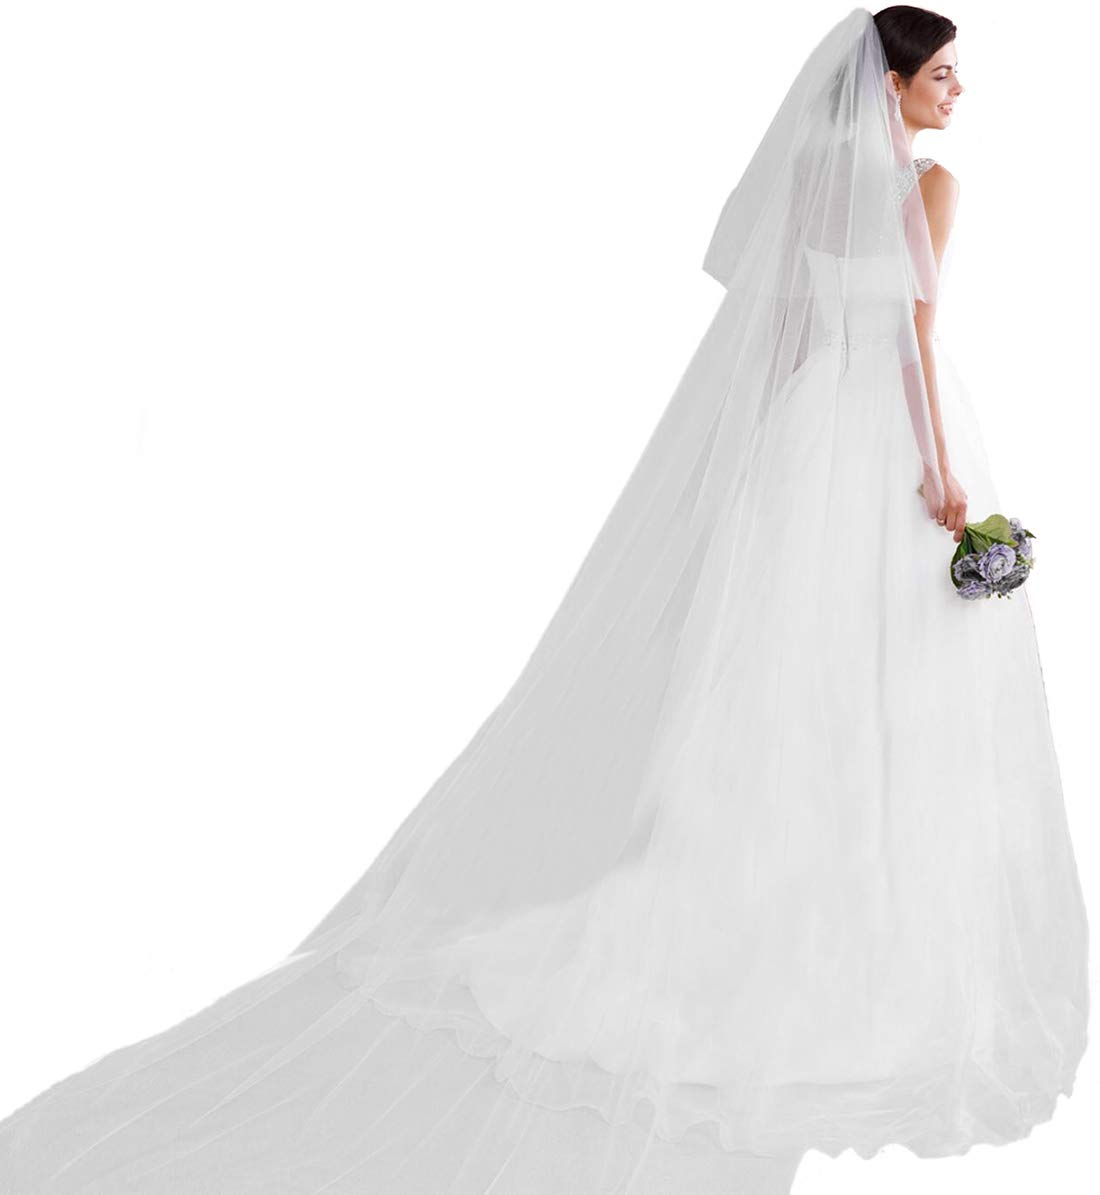 Barogirl Cathedral Wedding Veil Ivory Bridal Veil with Comb (118.11 inches, 2 Tiers Veil, White)